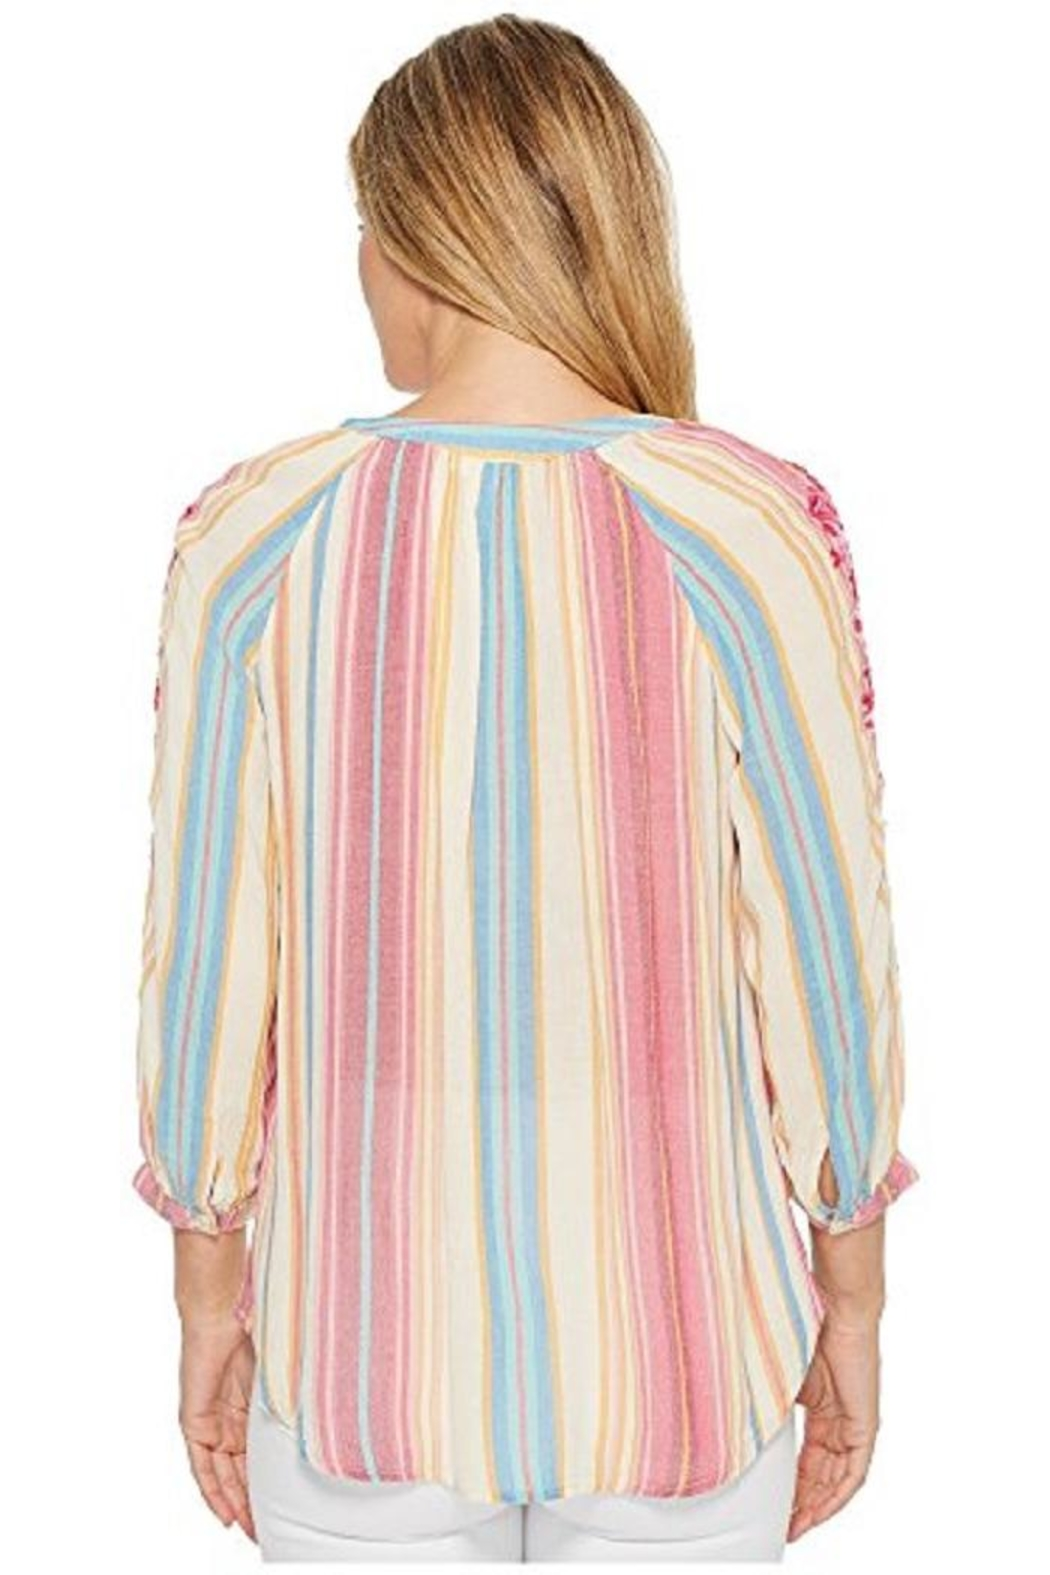 Kut from the Kloth Colorful Embroidered Top - Front Full Image